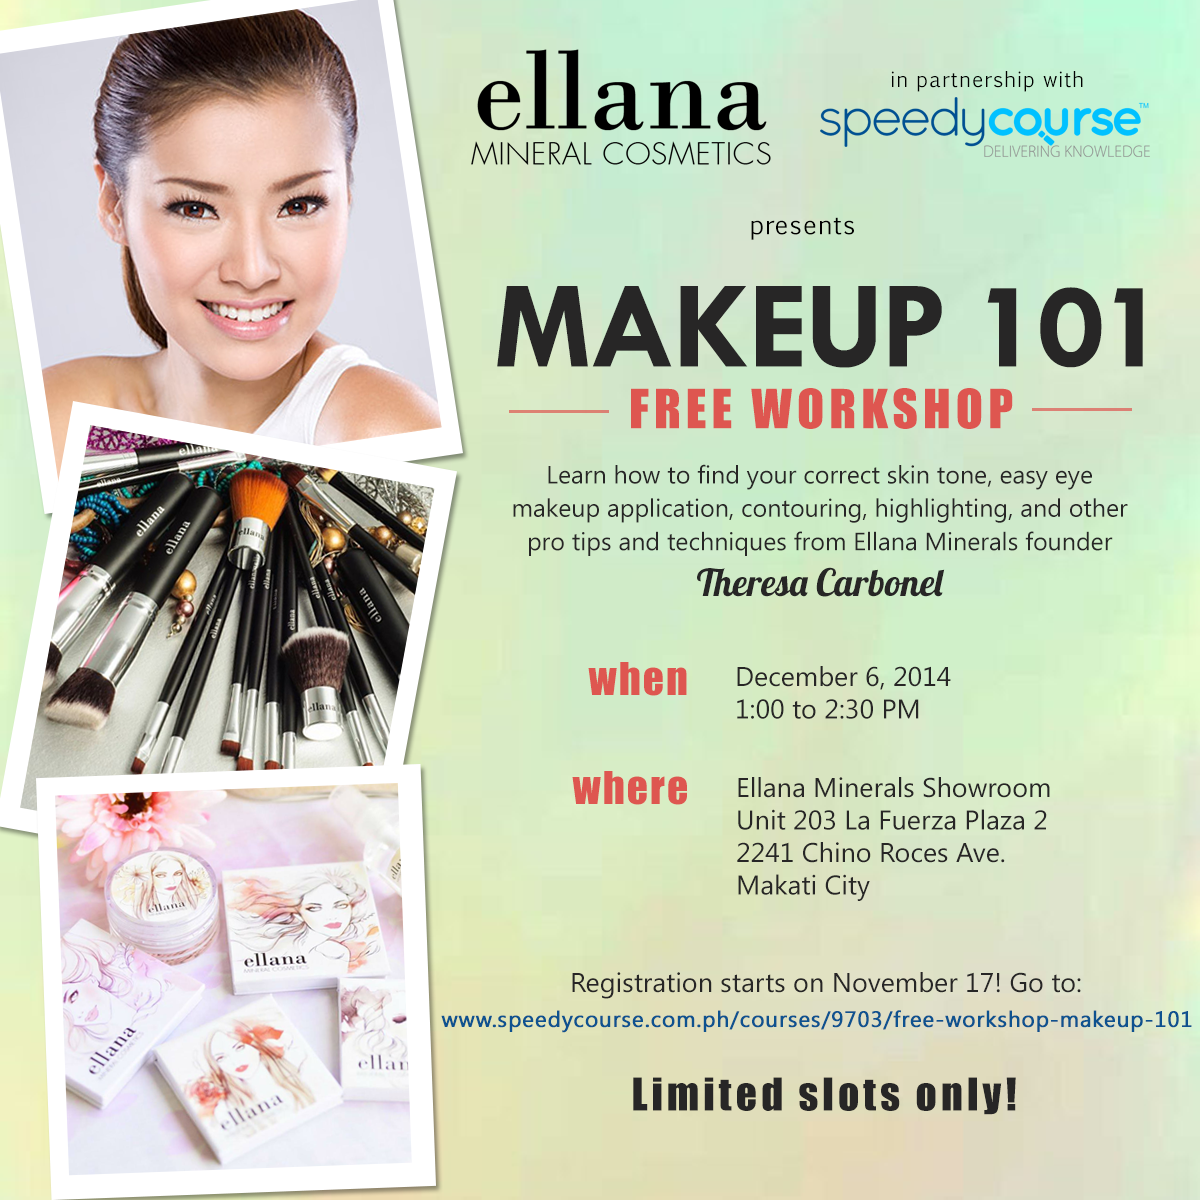 free workshop makeup 101 by ellana minerals and speedycourse vanity and everything in between. Black Bedroom Furniture Sets. Home Design Ideas